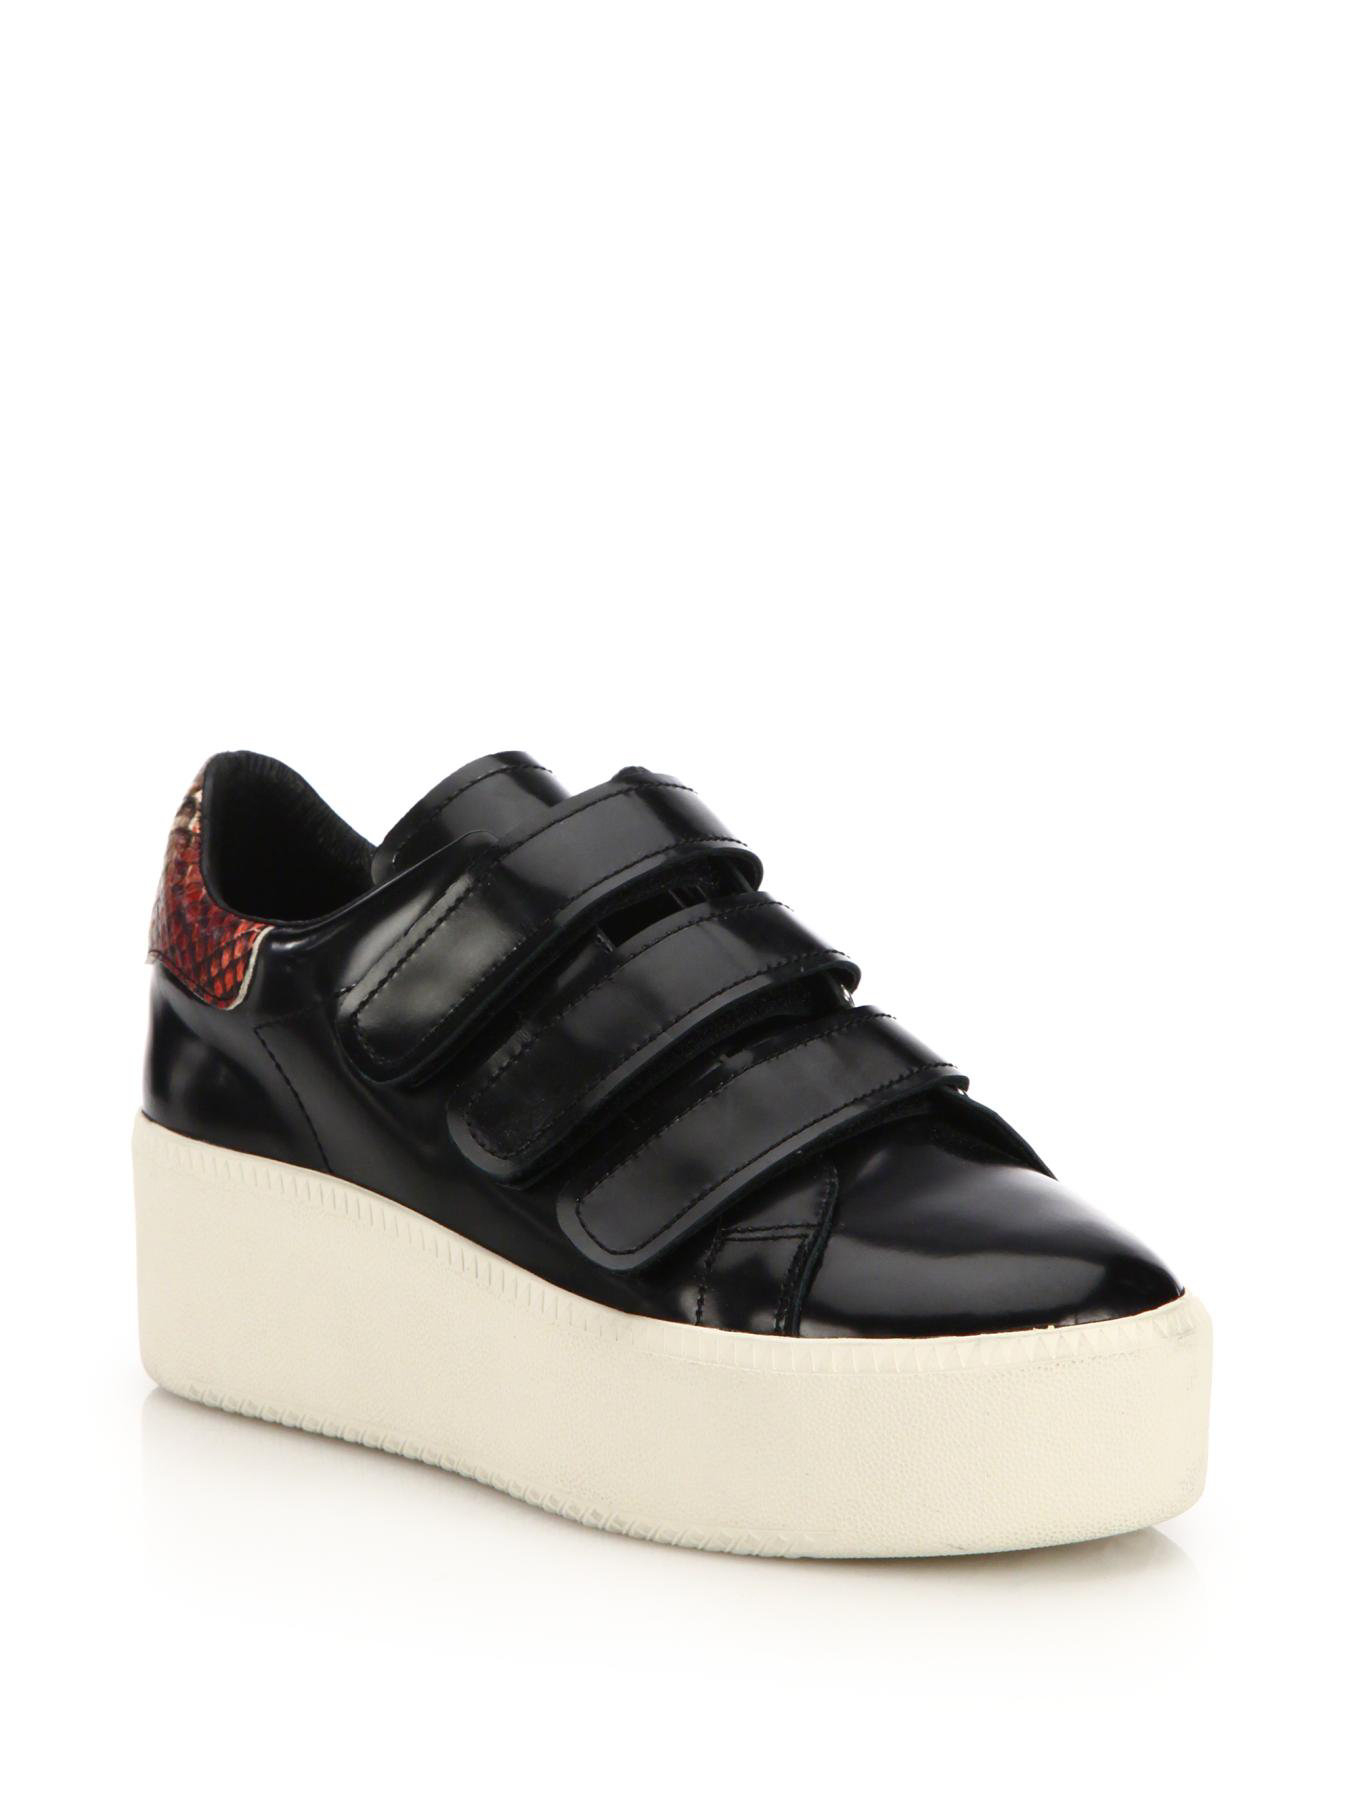 Ash Cool Leather Platform Sneakers In Black Lyst